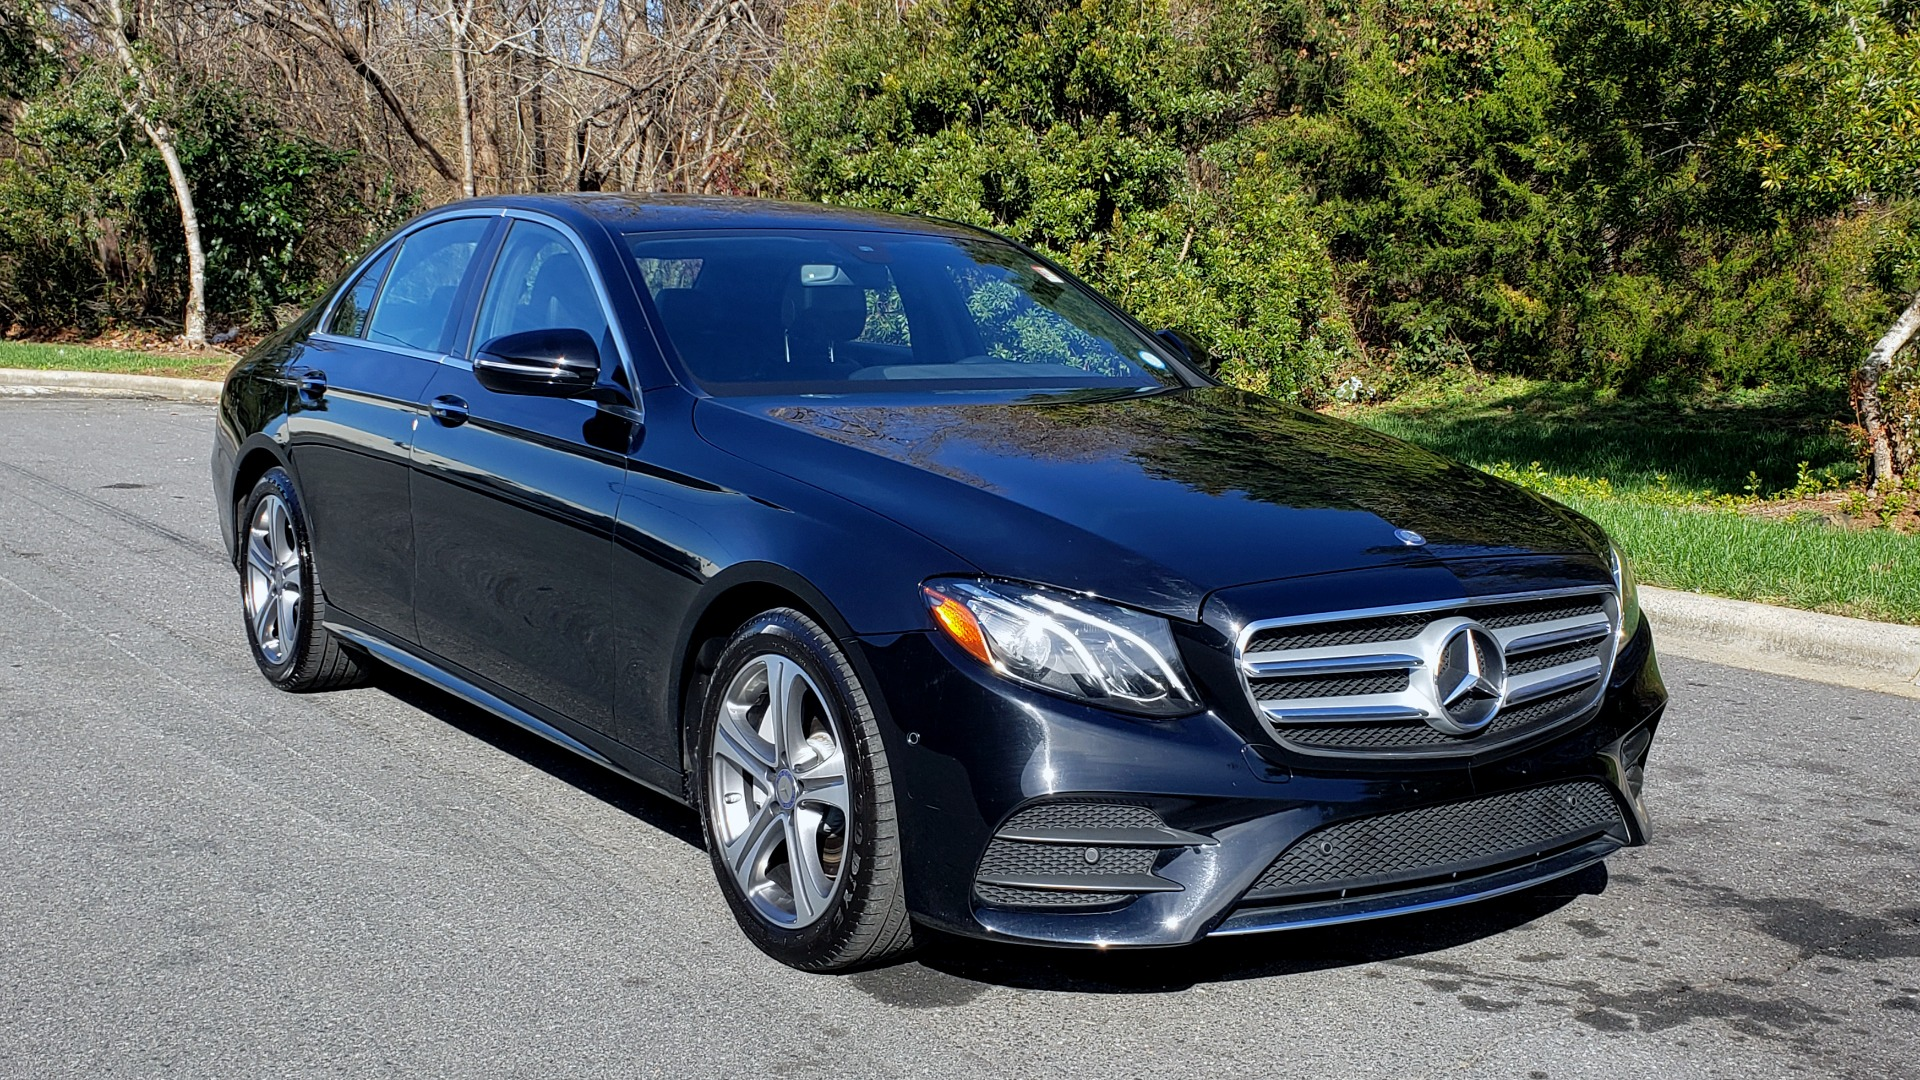 Used 2017 Mercedes-Benz E-CLASS E 300 PREMIUM / NAV / SUNROOF / BURMESTER / HTD STS / REARVIEW for sale Sold at Formula Imports in Charlotte NC 28227 4